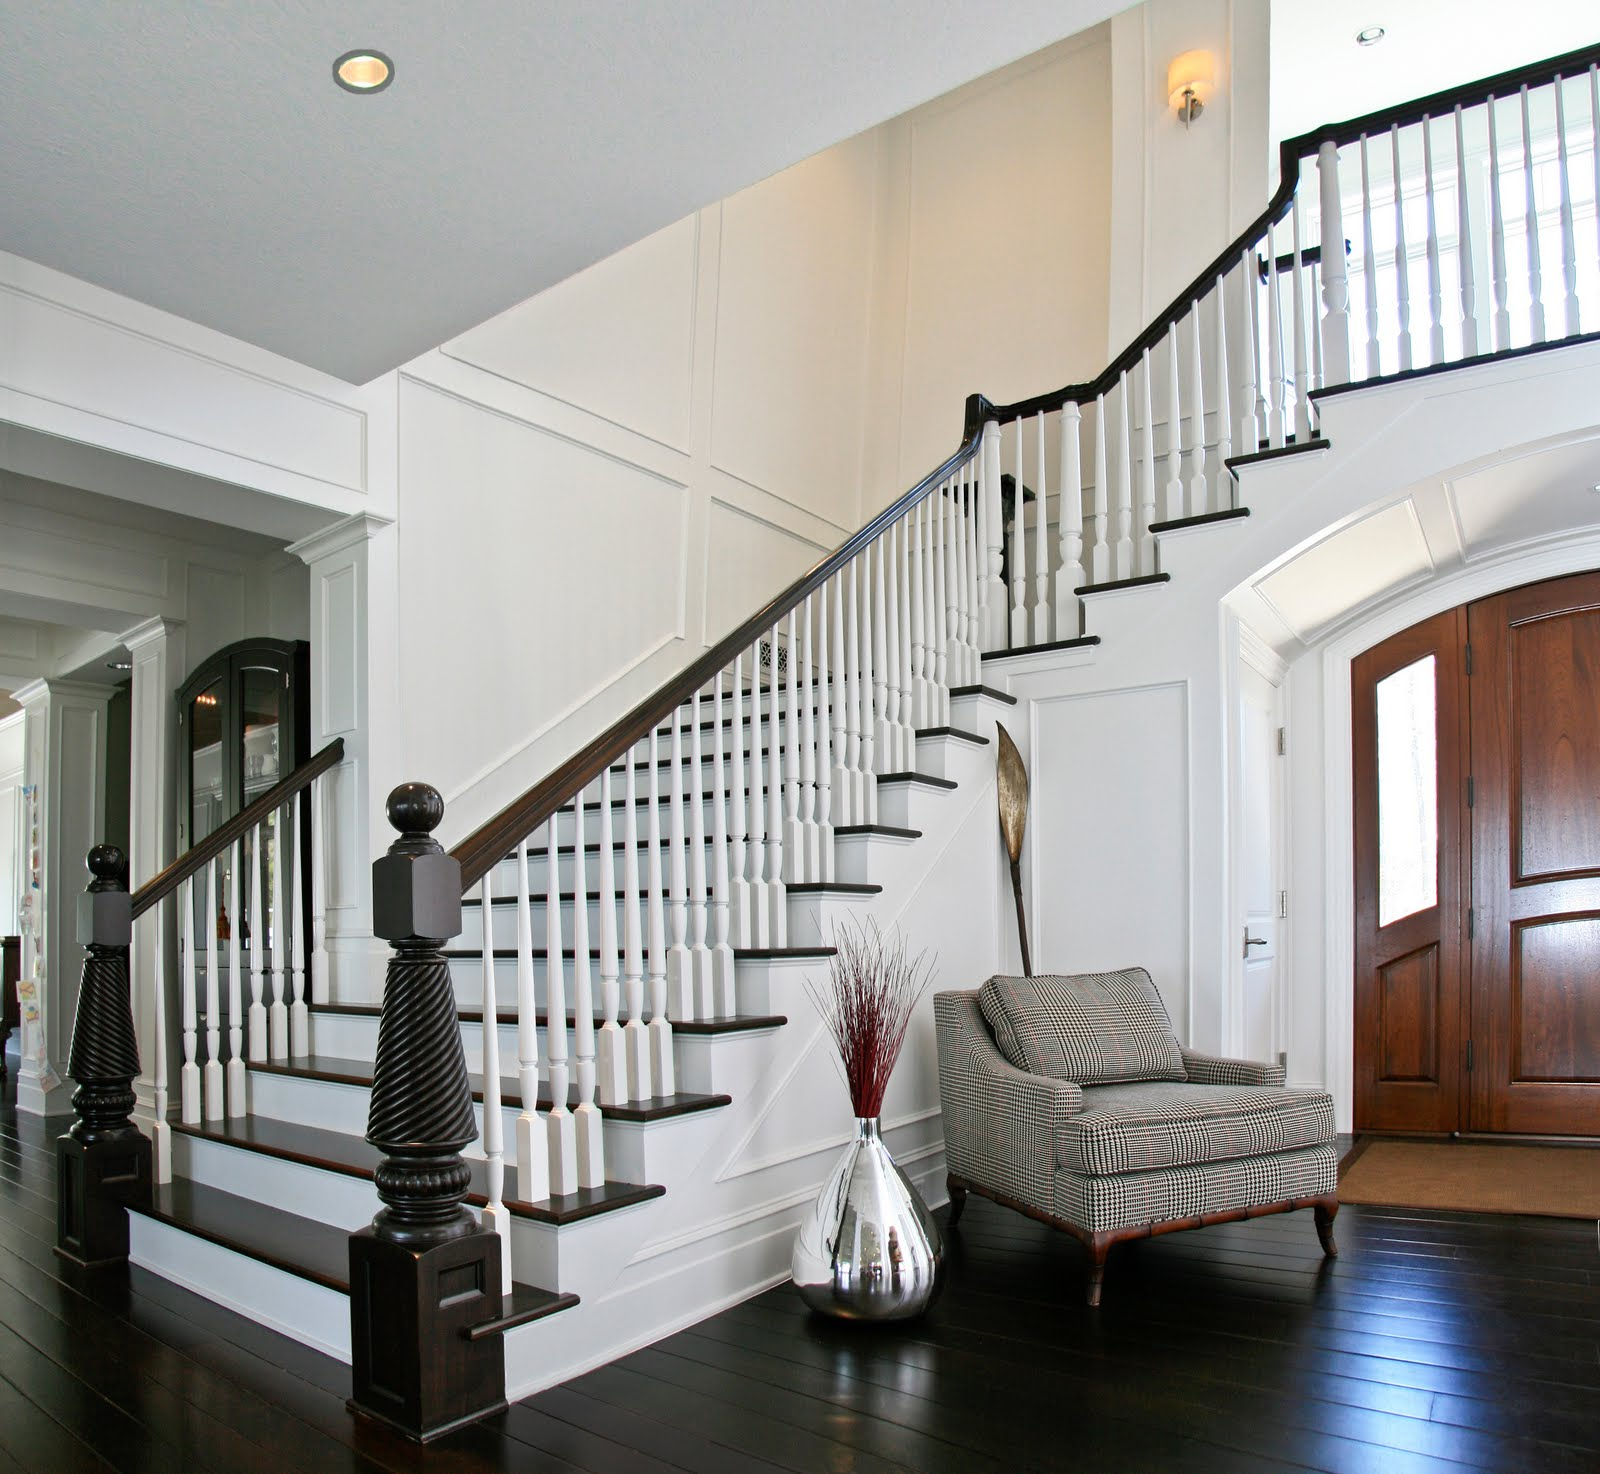 home decorating ideas staircase 25 stair design ideas for your home 11332